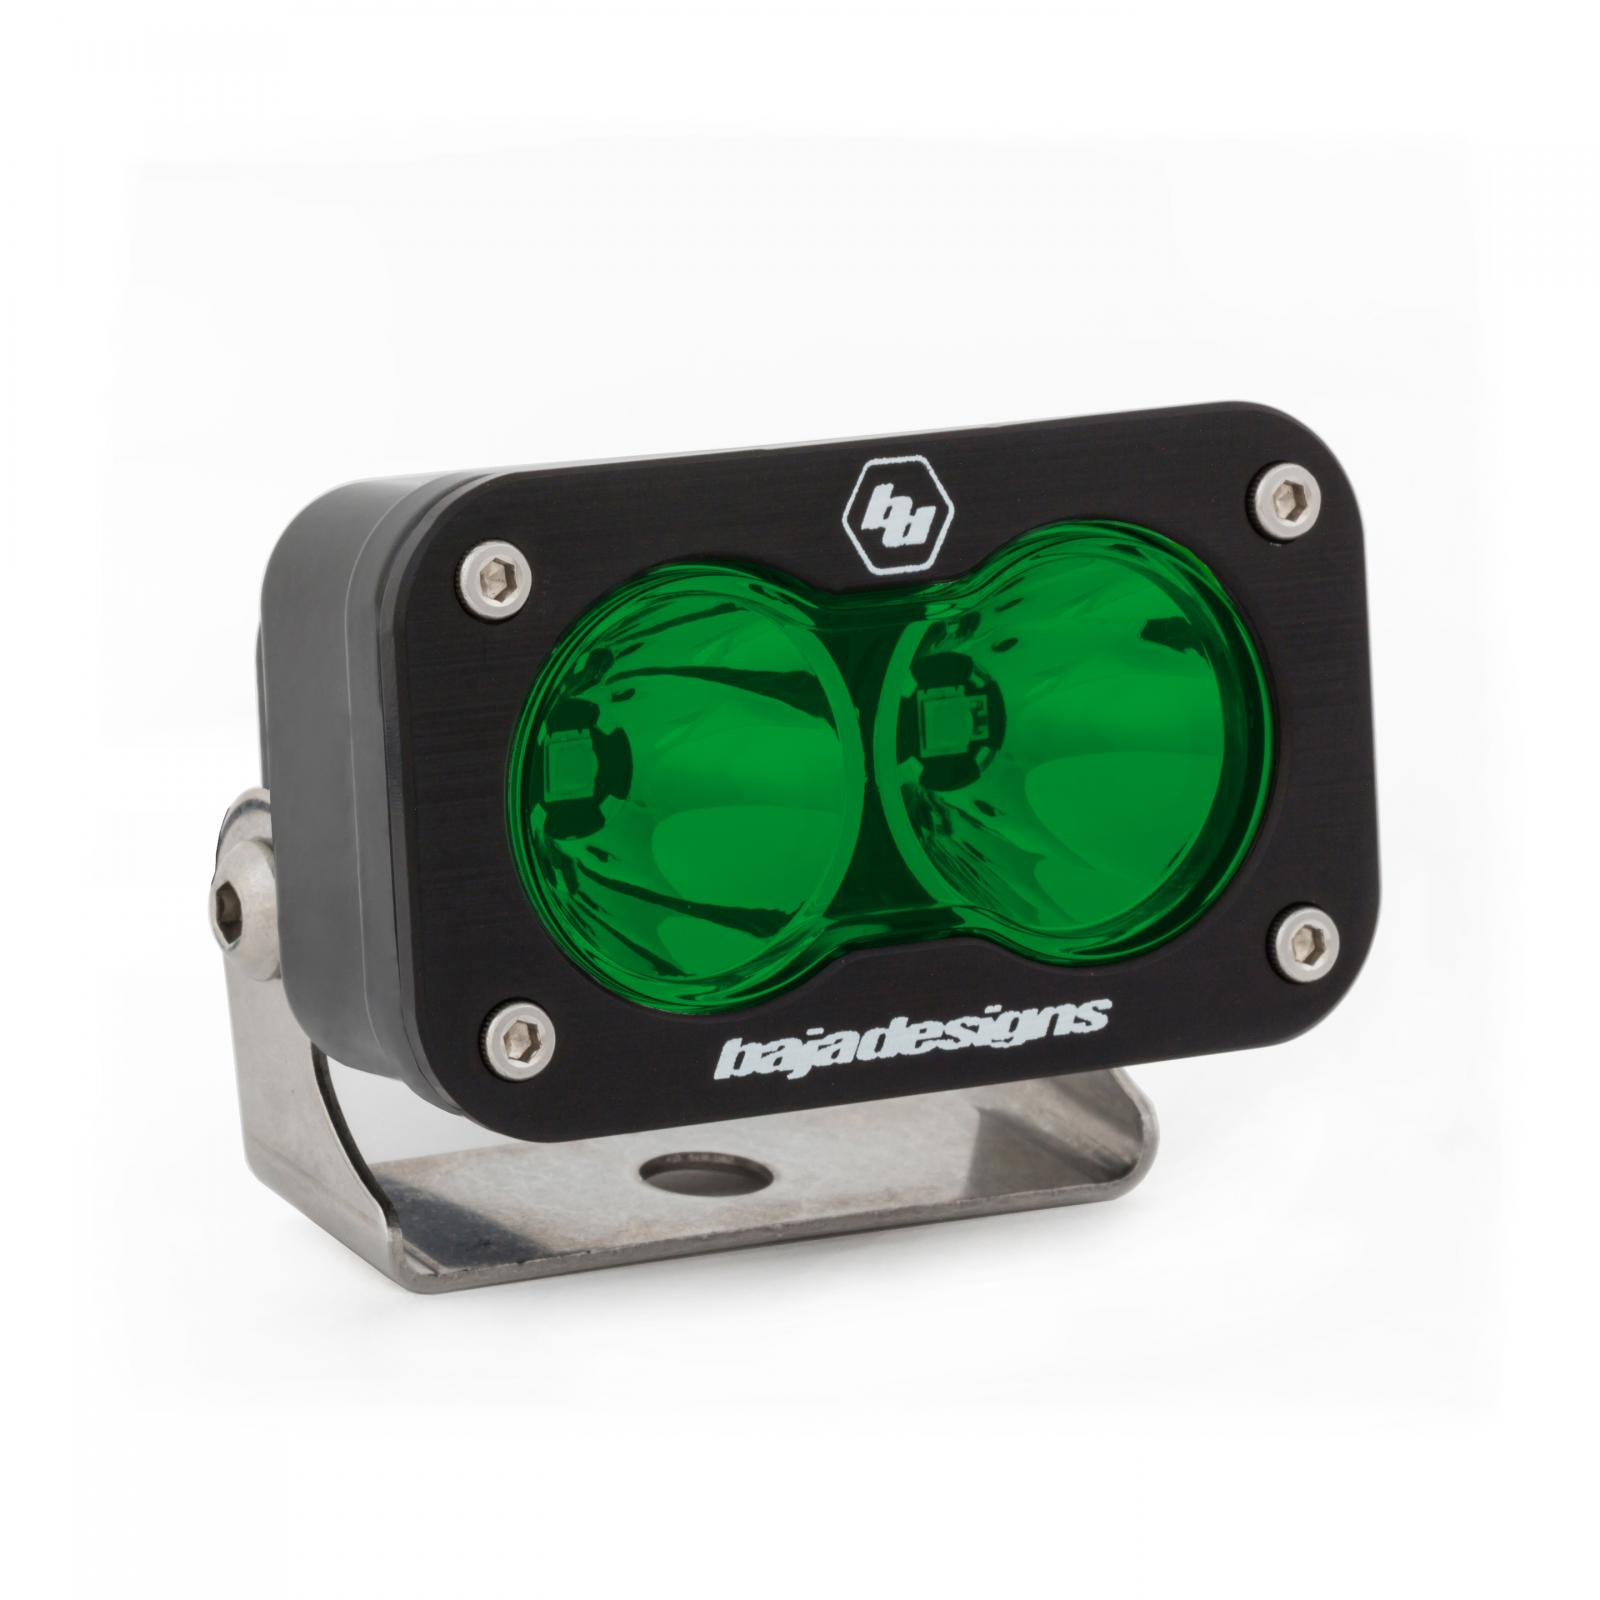 LED Work Light Green Lens Spot Pattern S2 Sport Baja Designs